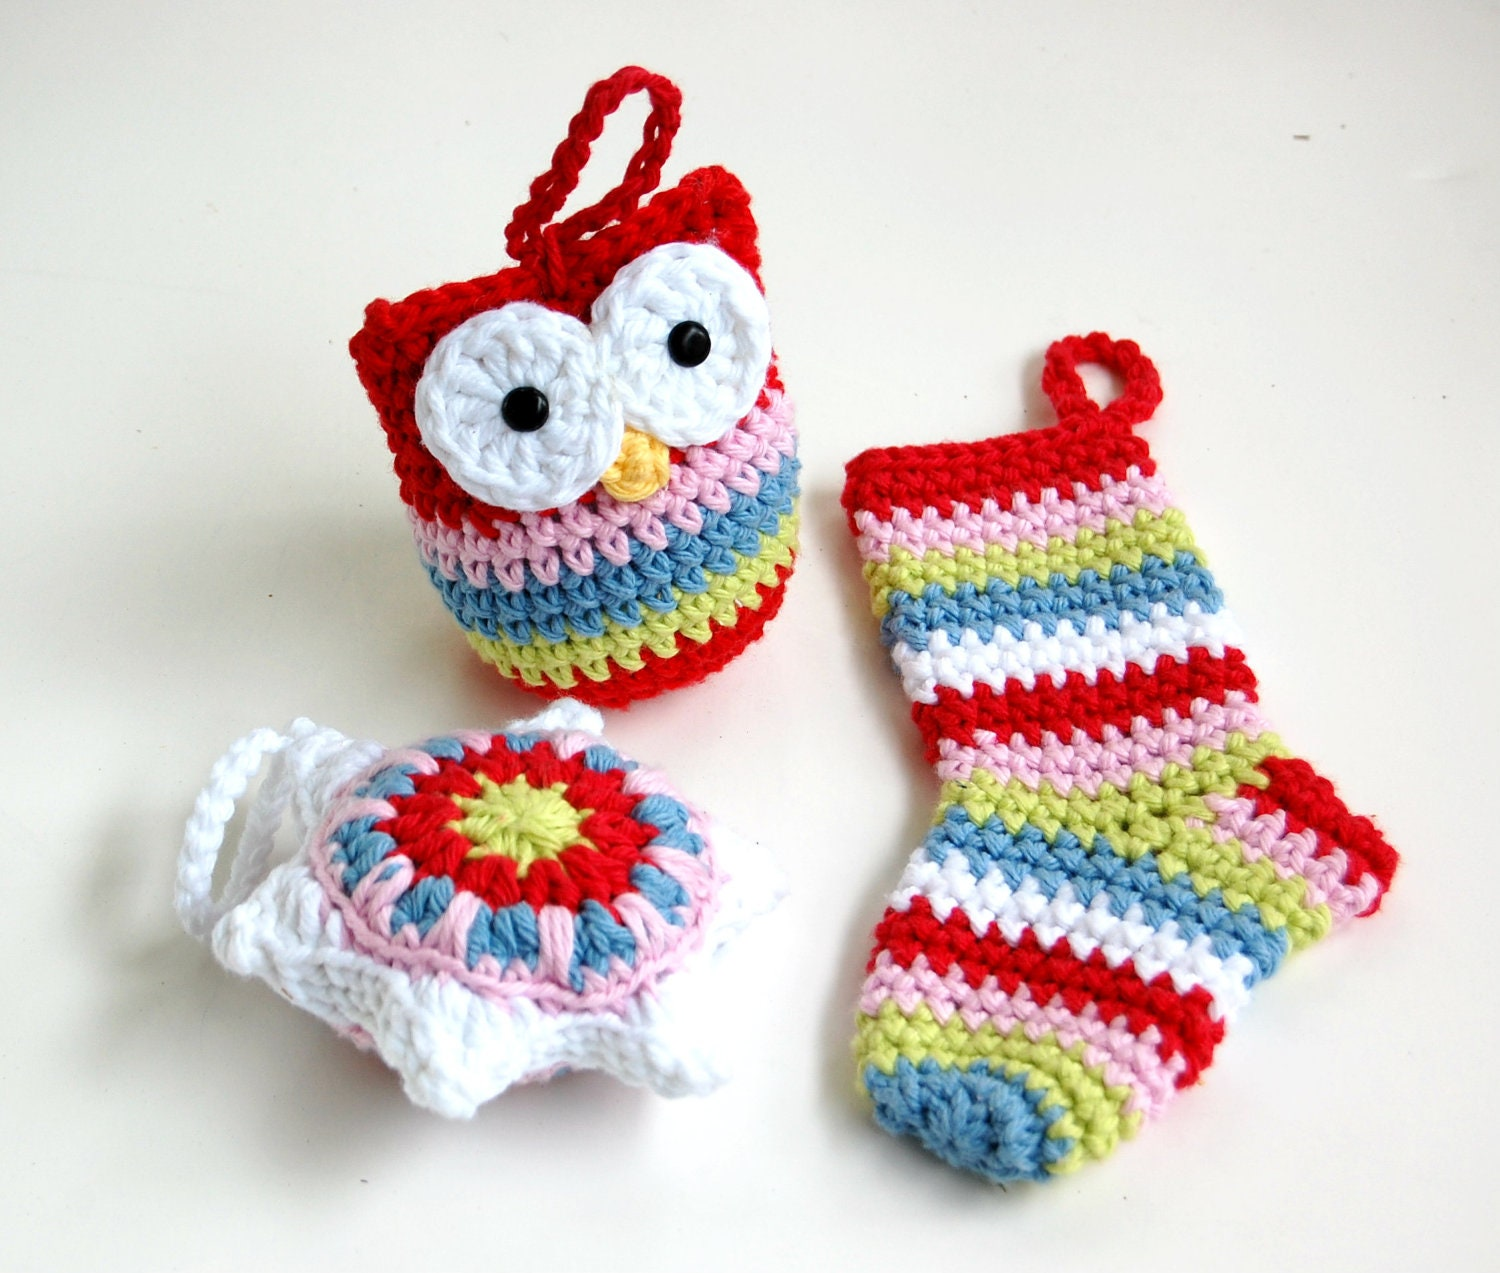 Crochet Ornaments : Crochet Christmas Ornaments Aboutcom Crochet Auto Design Tech